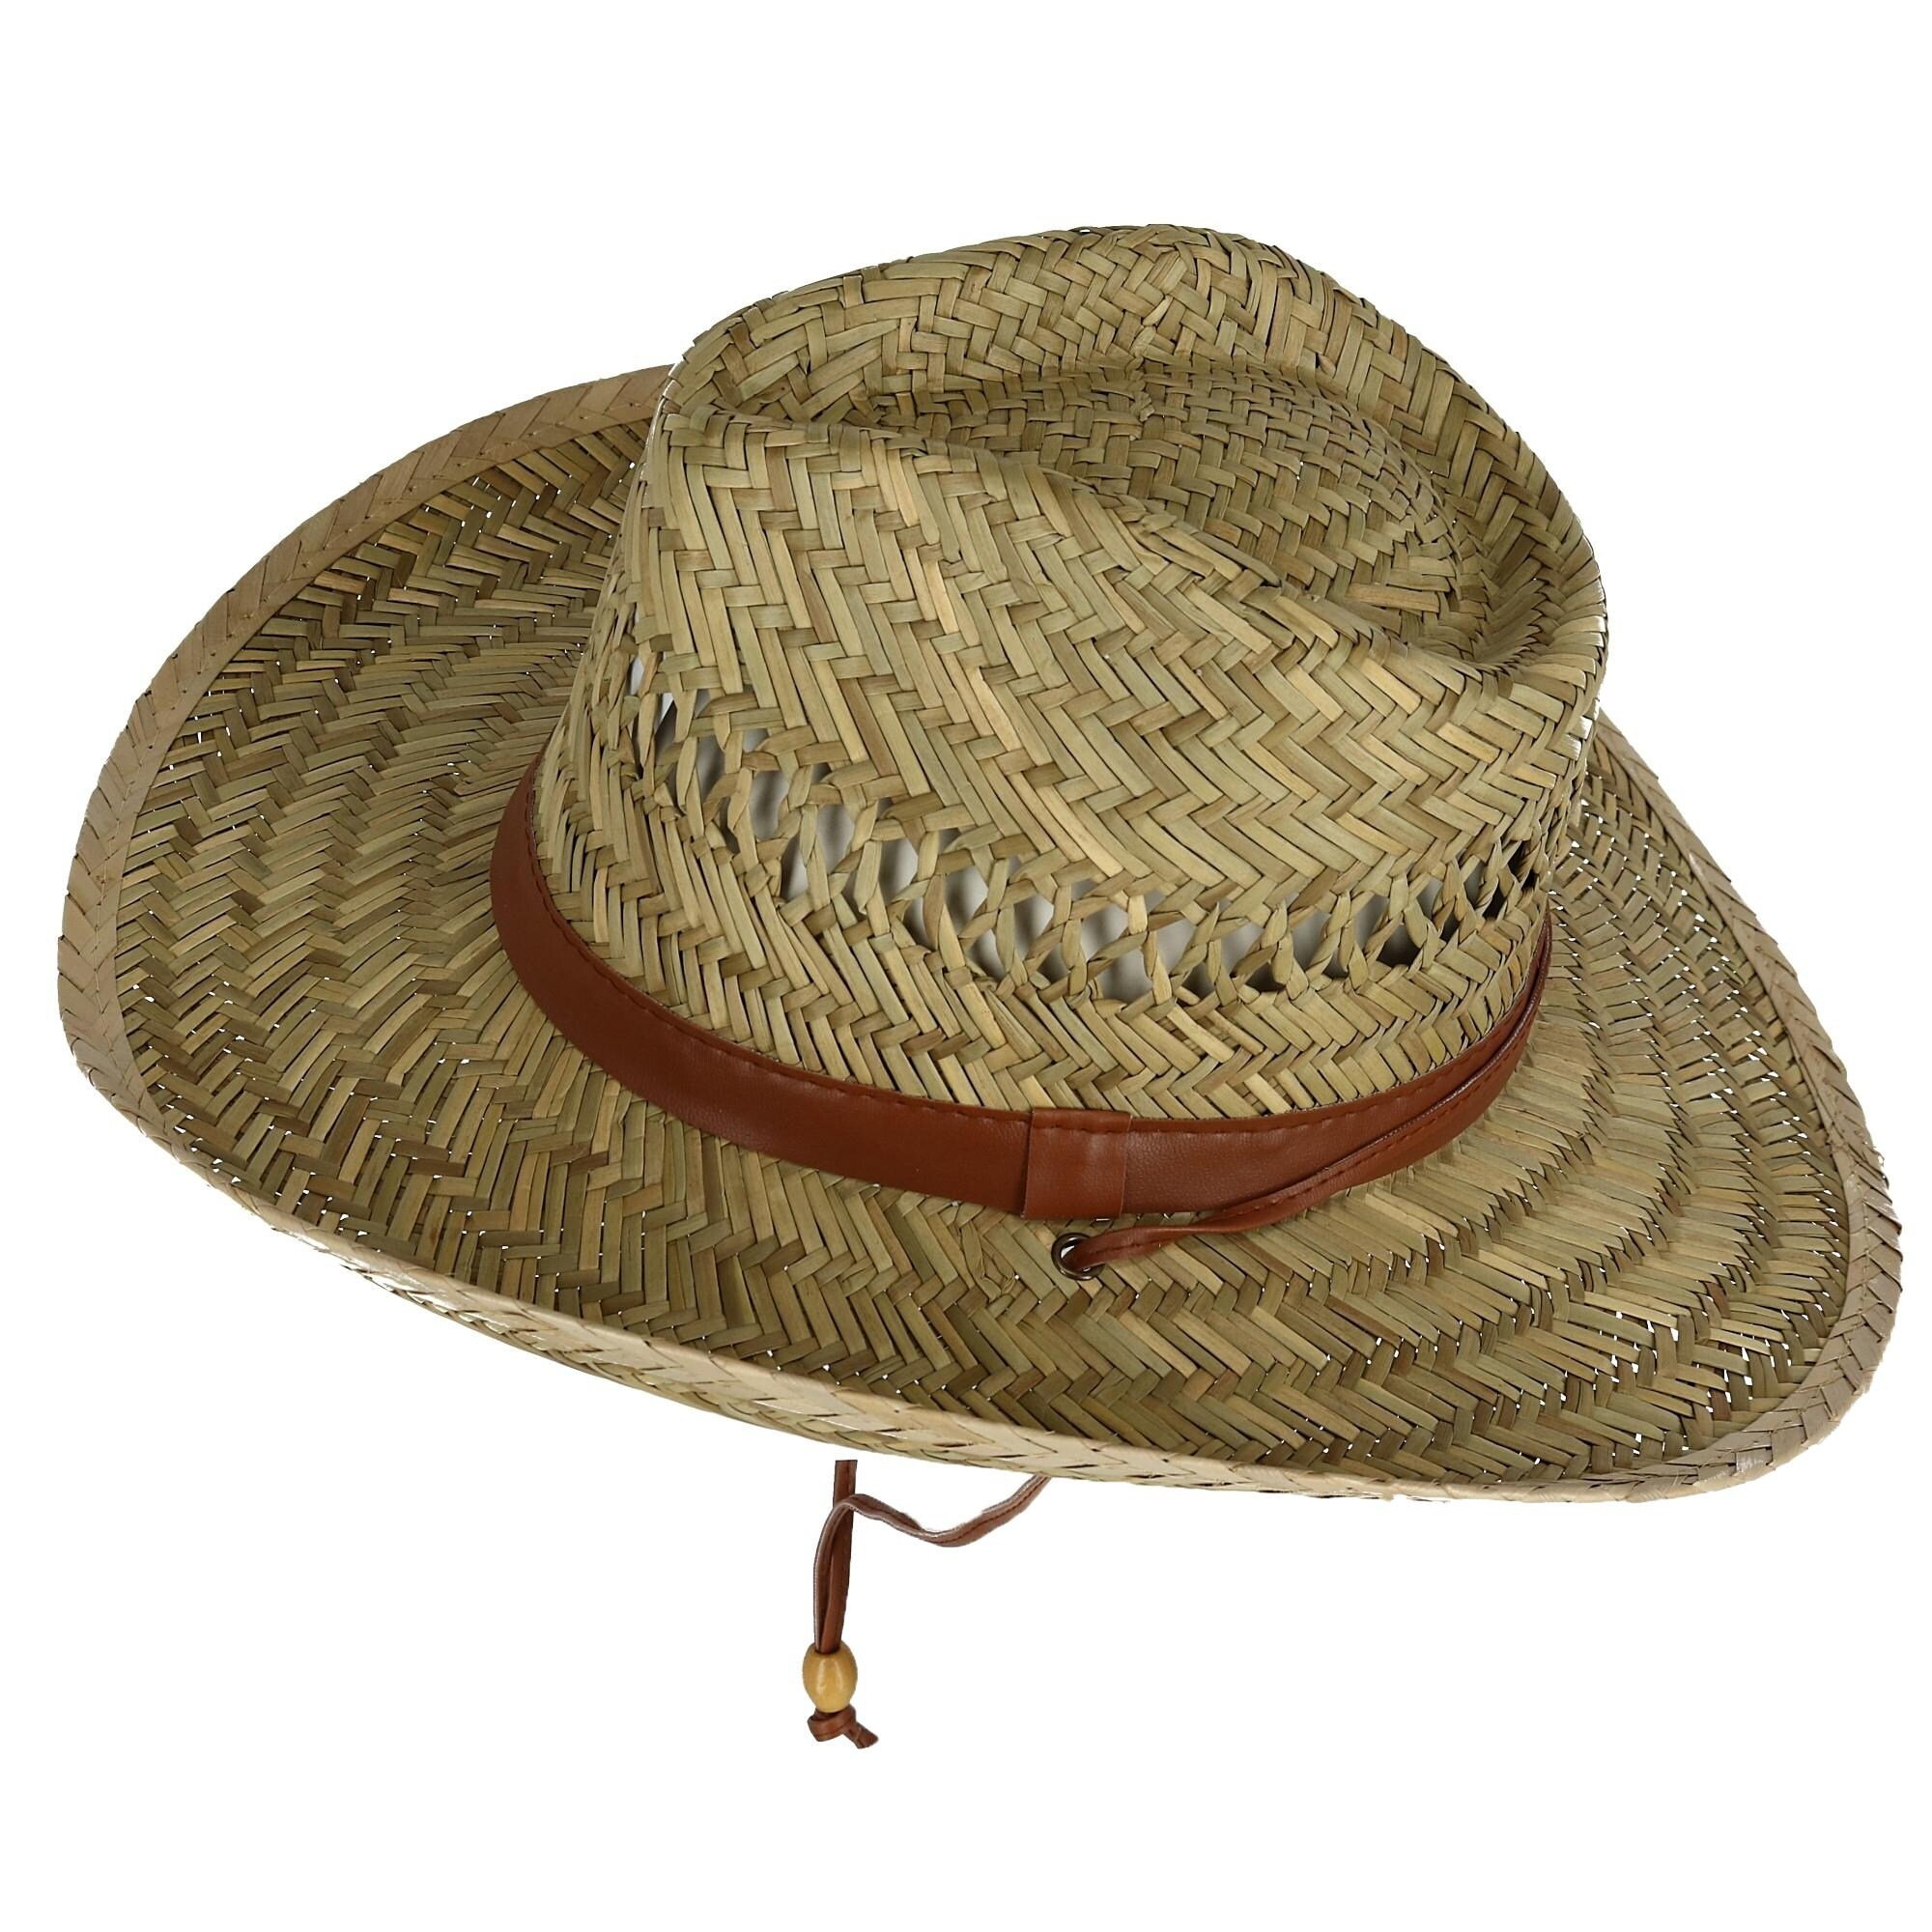 7c5c577187b0f9 Shop Kenny K Men's Rush Straw Lightweight Safari Hat with Chin Cord - Free  Shipping On Orders Over $45 - Overstock - 24259898